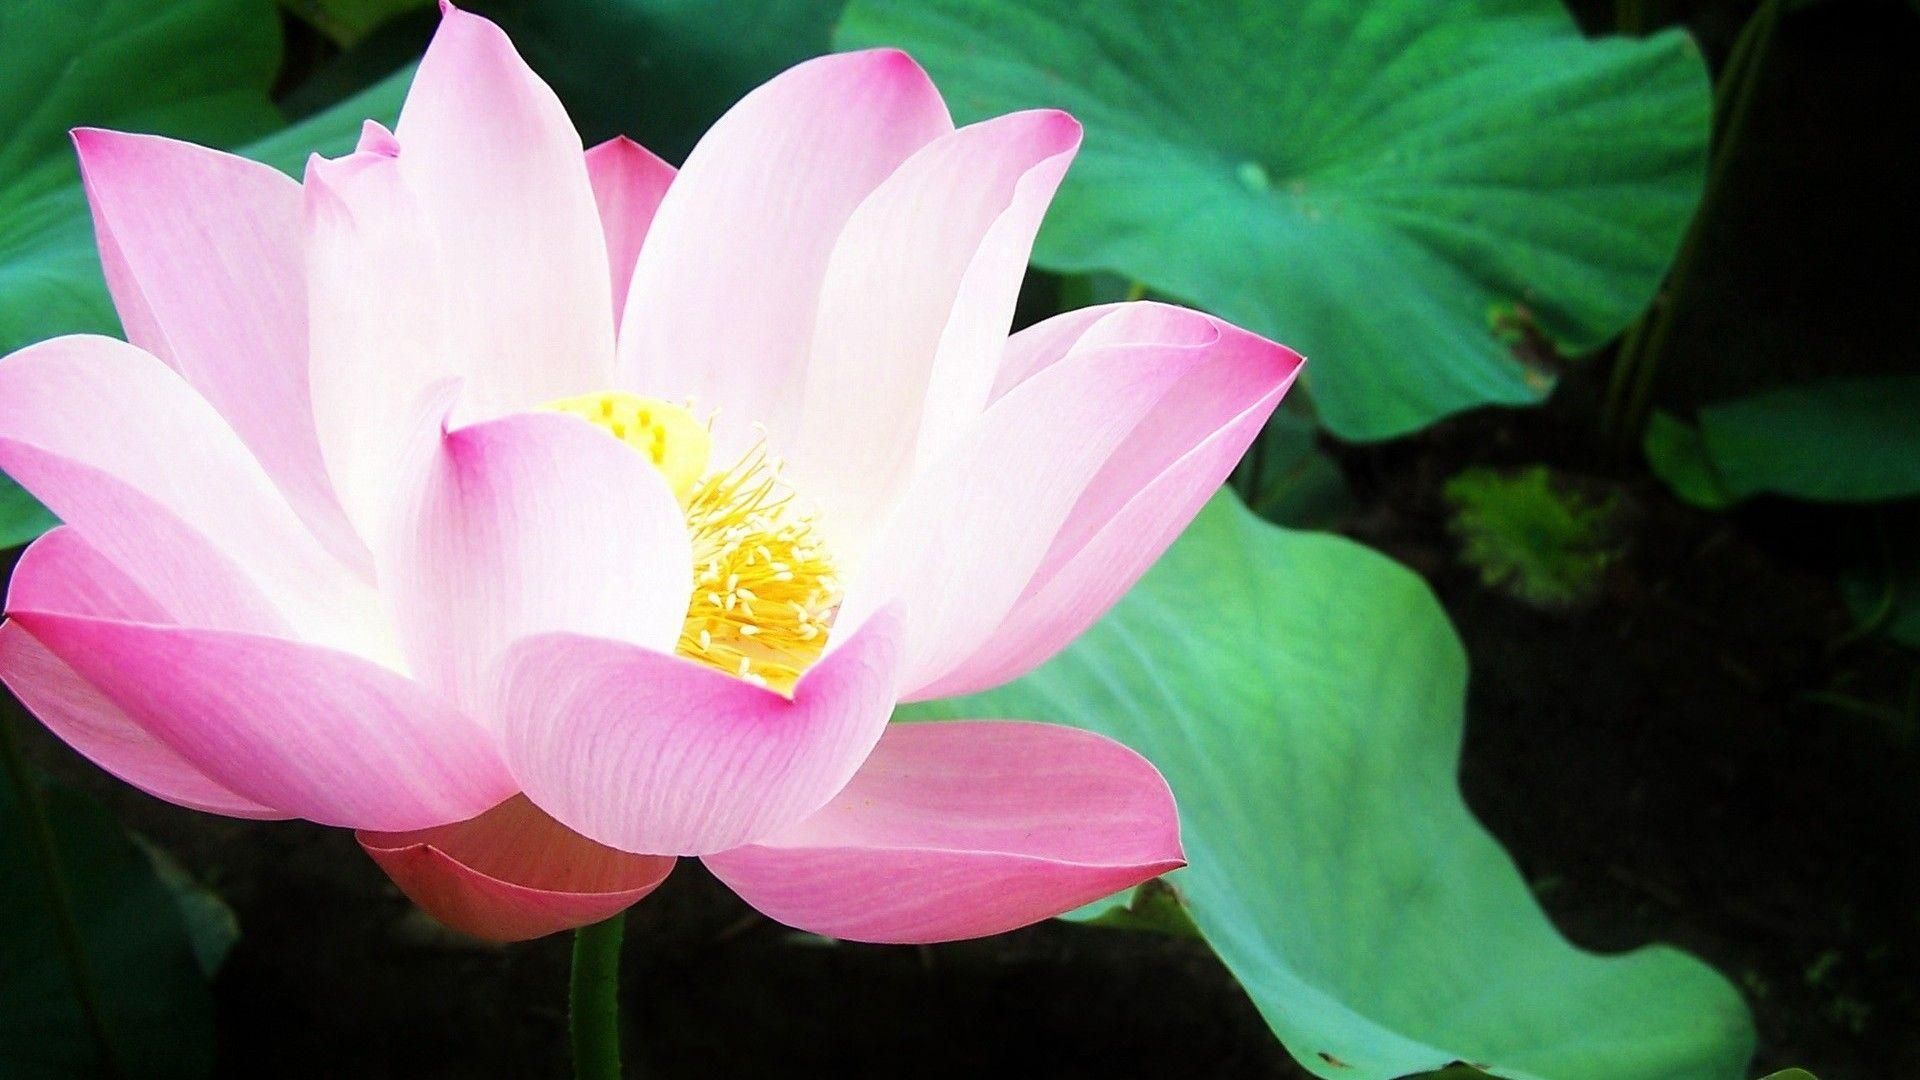 Lily pad wallpapers wallpaper cave pink lily pad flower wallpaper flowerhdwallpaper izmirmasajfo